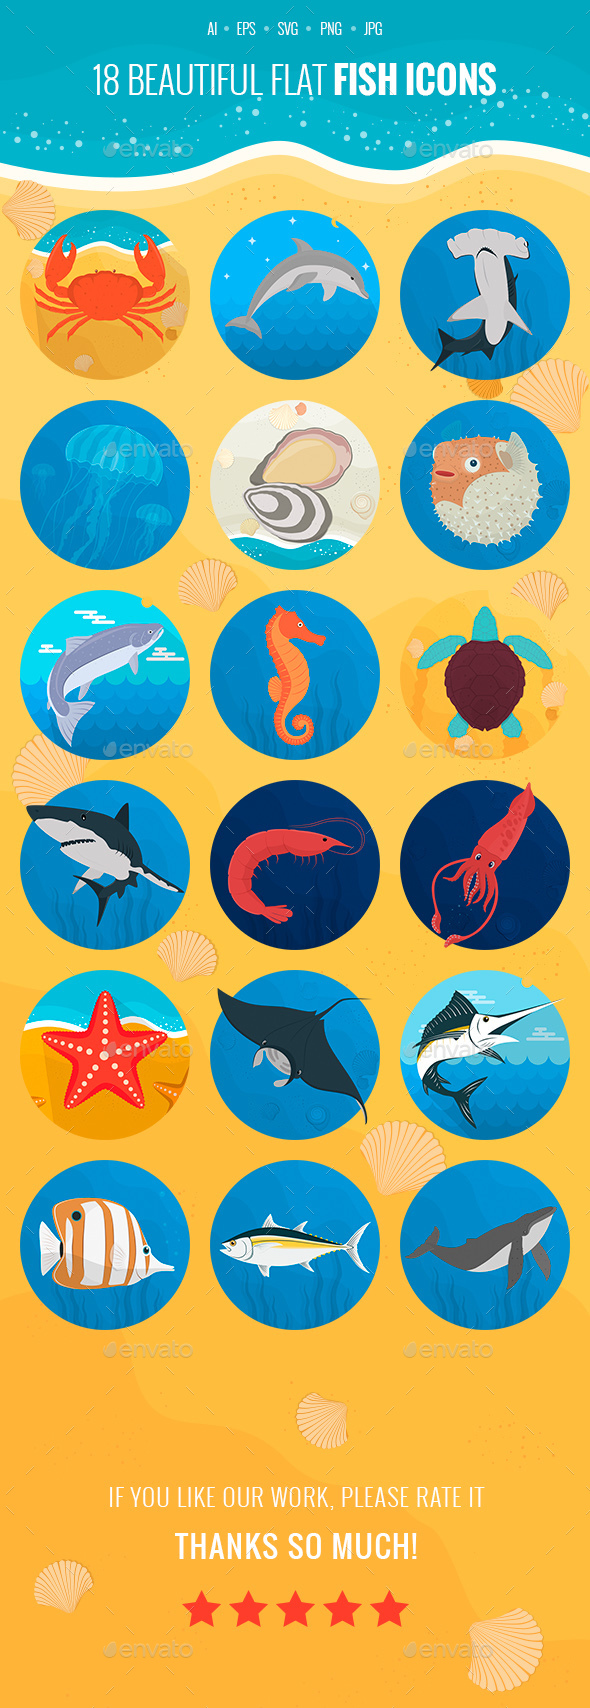 Fish Flat Icons - Animals Characters